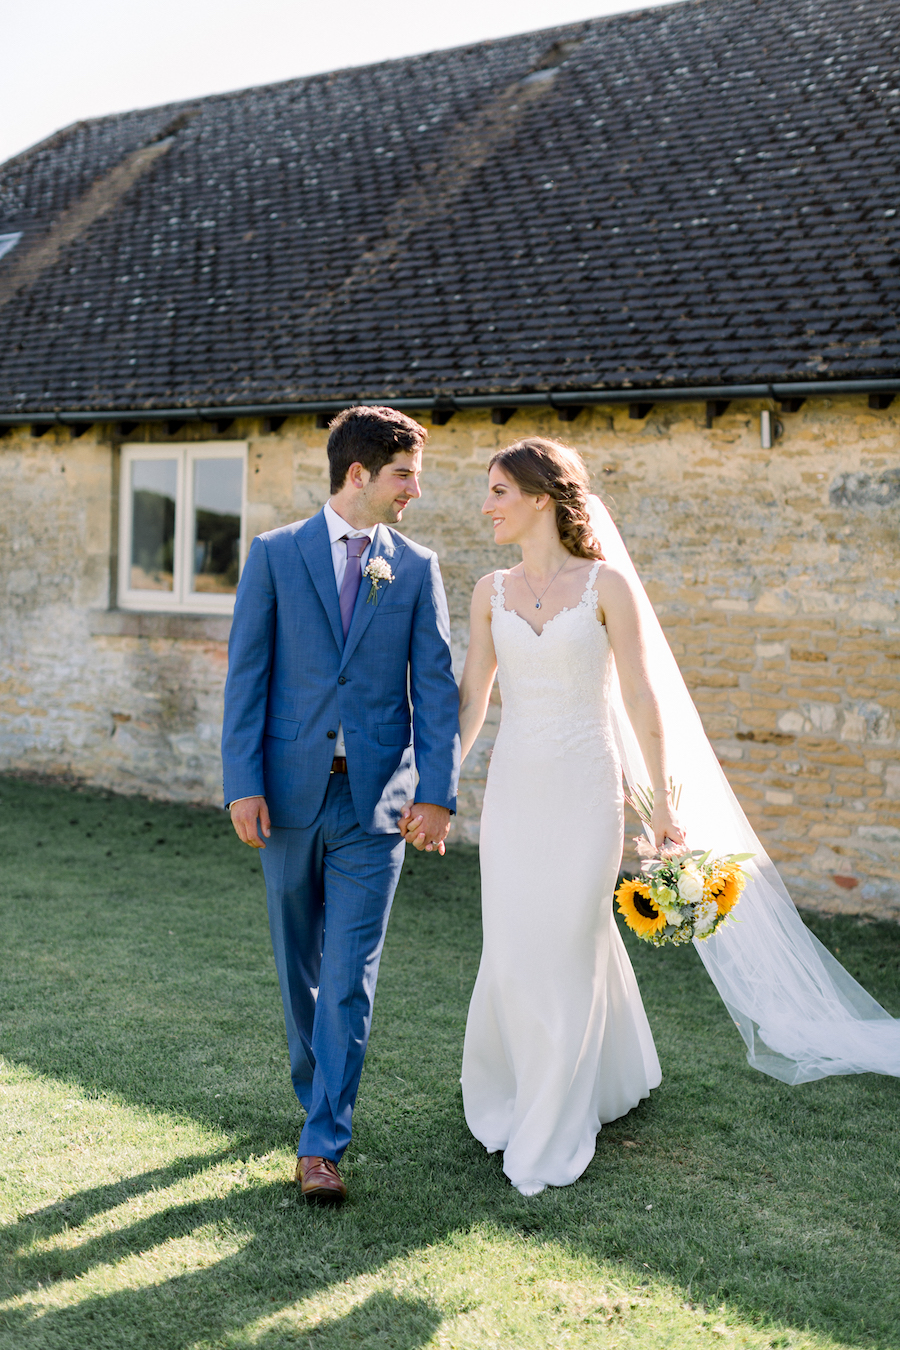 Louisa & Will's light and airy sunflower wedding at Lapstone Barn, with Hannah K Photography (16)